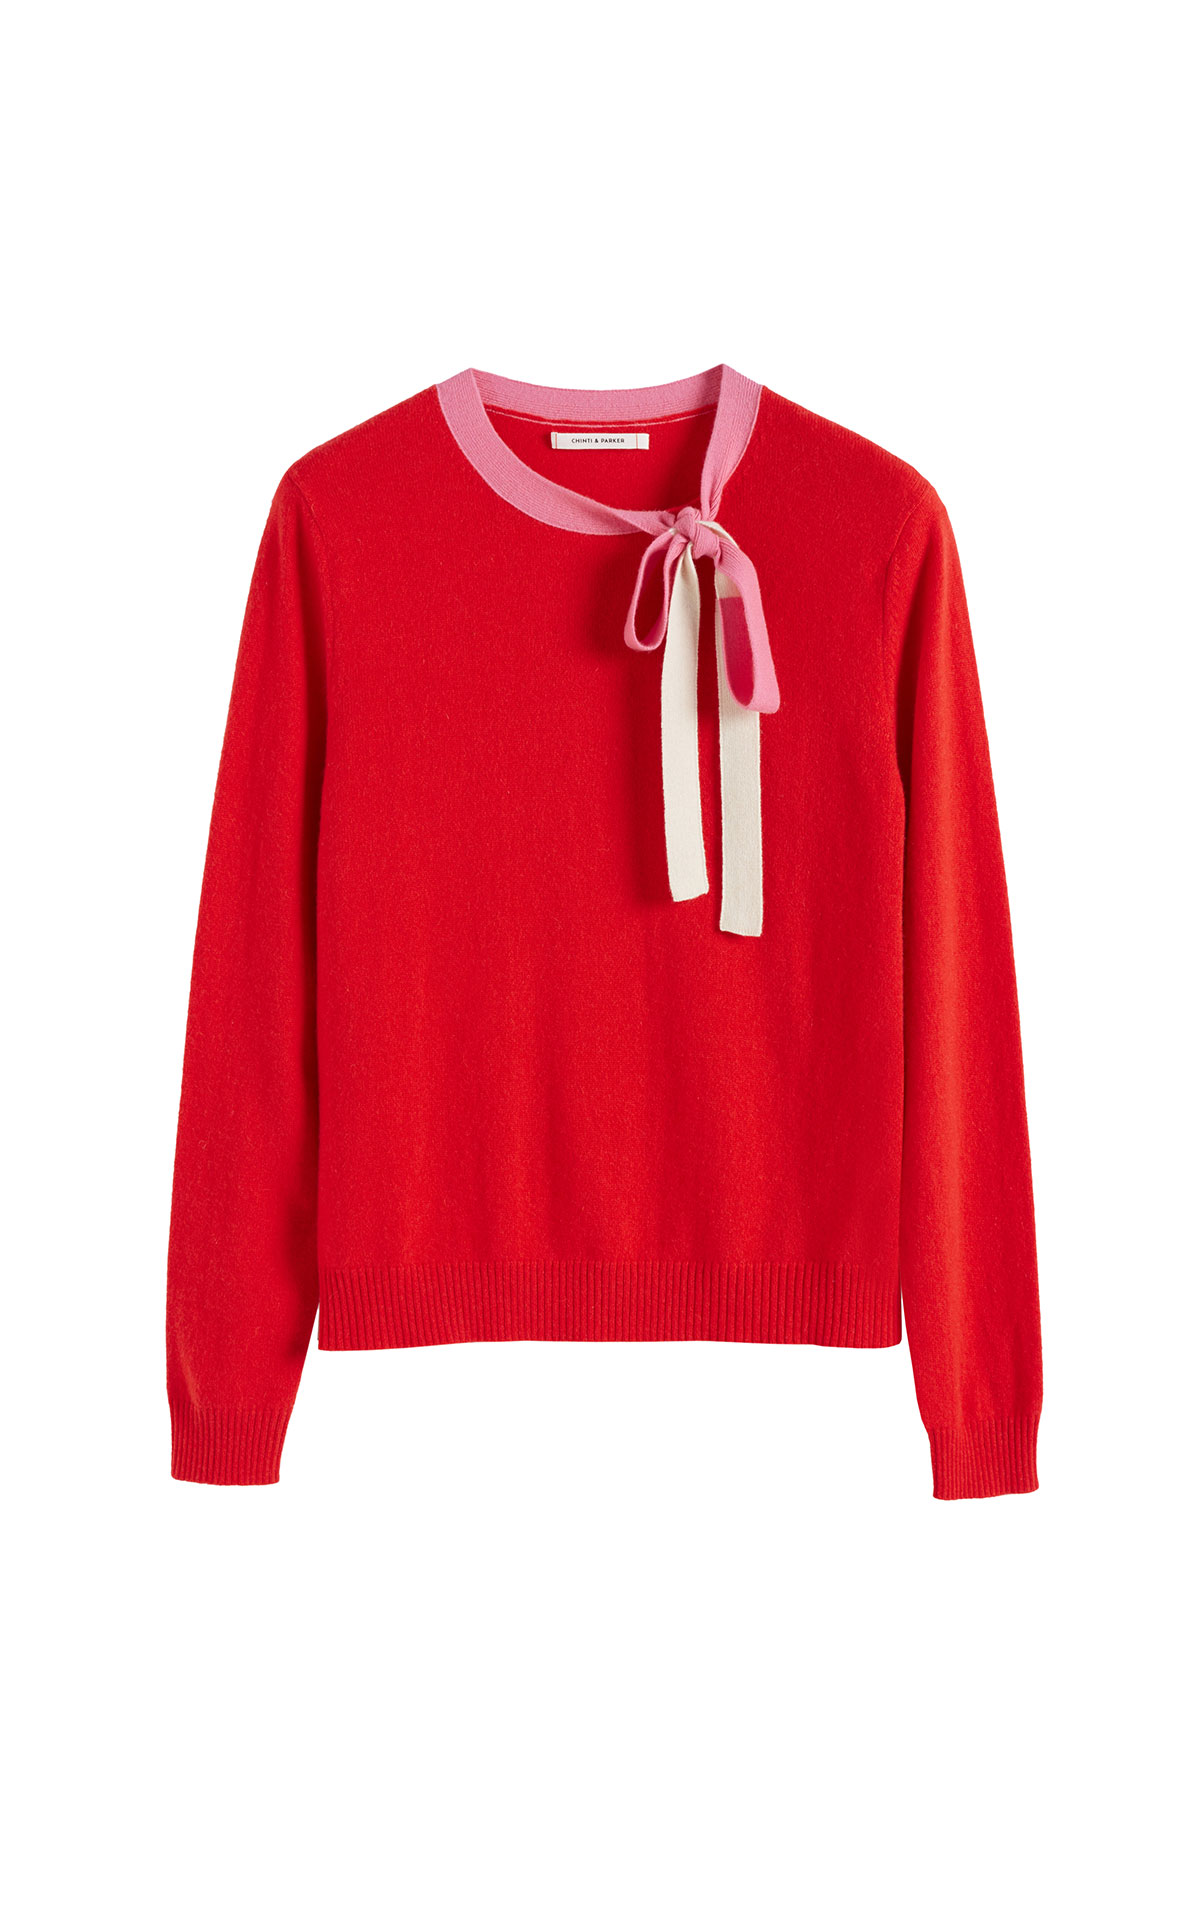 Chinti & Parker Red neck tie sweater from Bicester Village